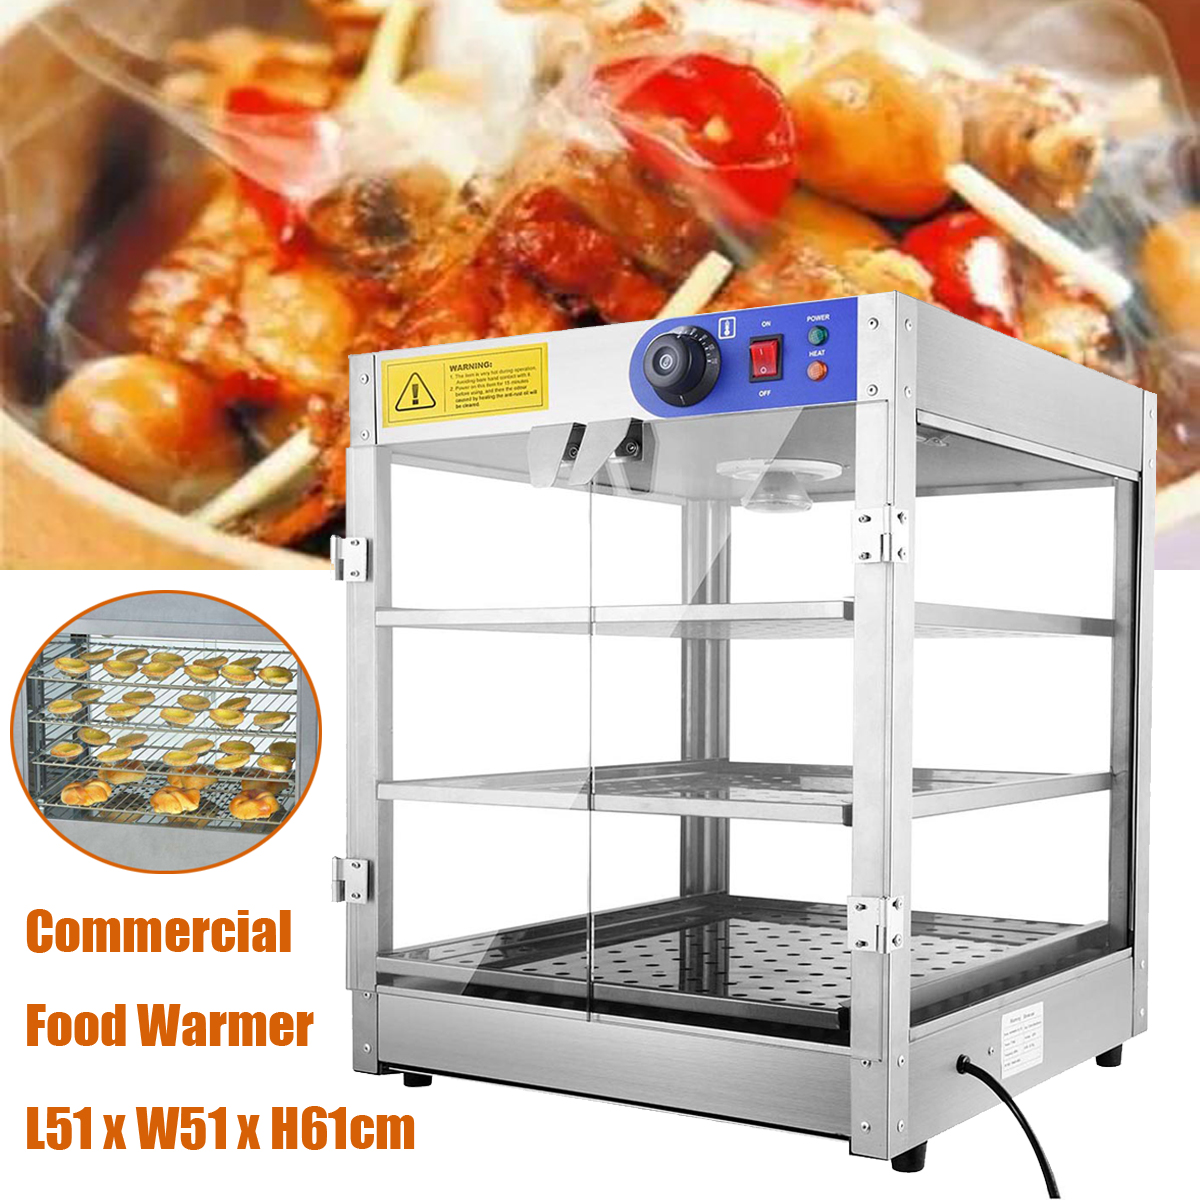 800W Food Showcase Cabinet 3-layer Display Warmer Showcase Food Storage Warm Equipment for Kitchen hot dog display electric food warmer stainless steel food warmer cabinet warmer showcase warmer display